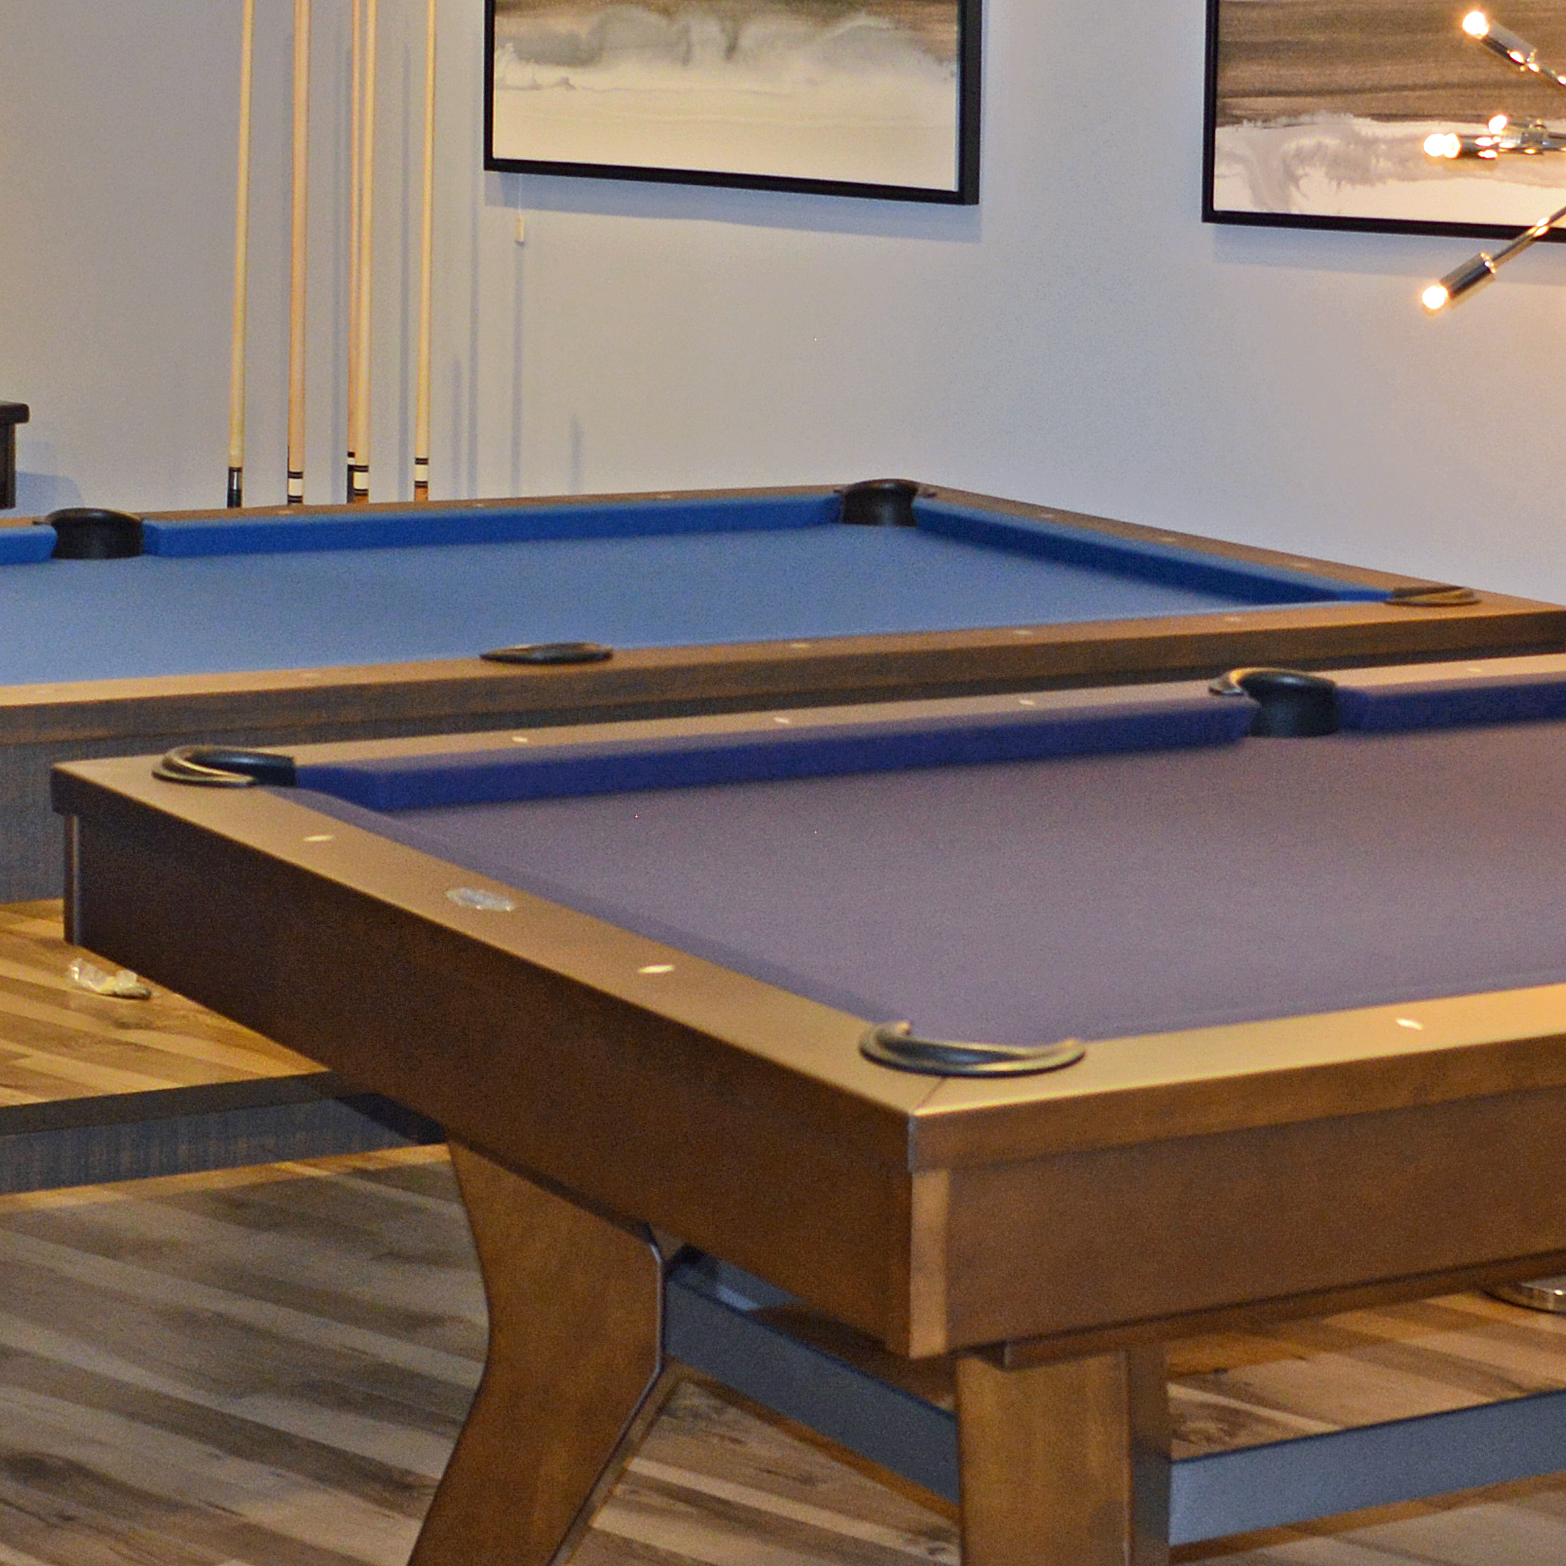 Used Pool Tables Buyers Guide Part 1 Robbies Billiards >> Robbies Billiards Pool Tables Game Room Furniture Since 1954